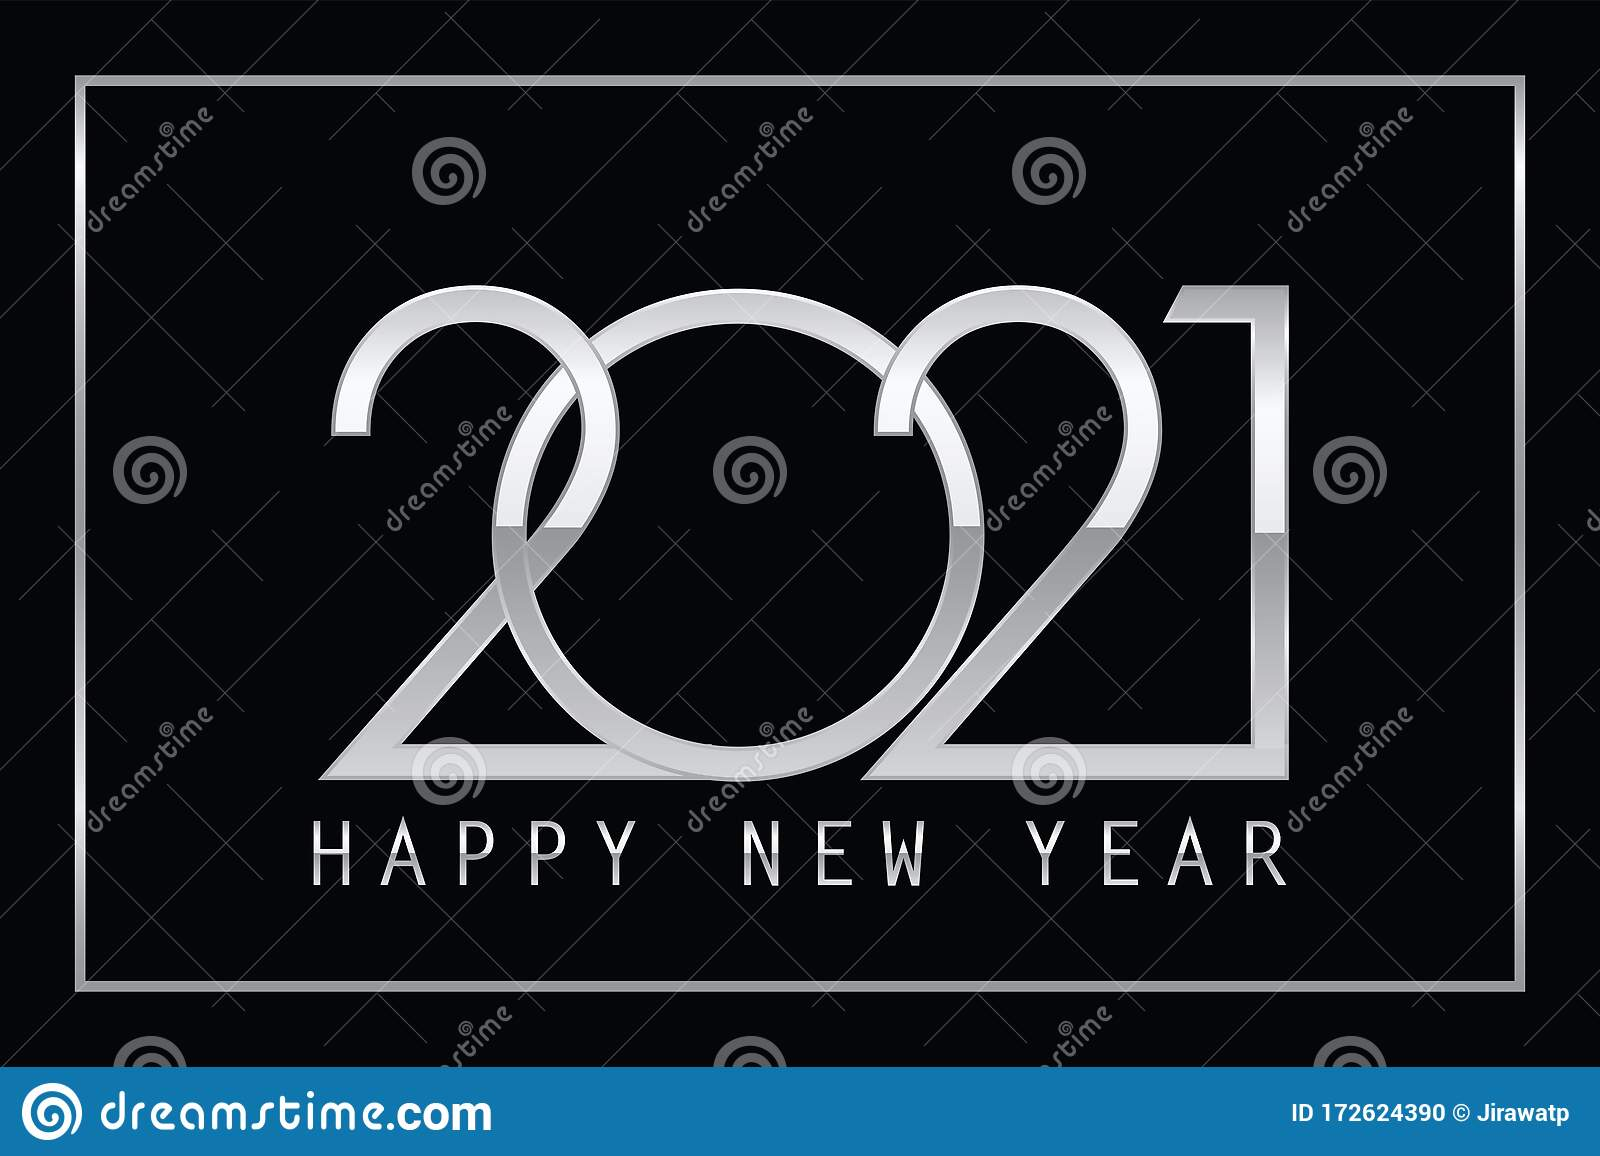 Happy New Year 2021 - Number 2021 Metallic Chrome Style On ...